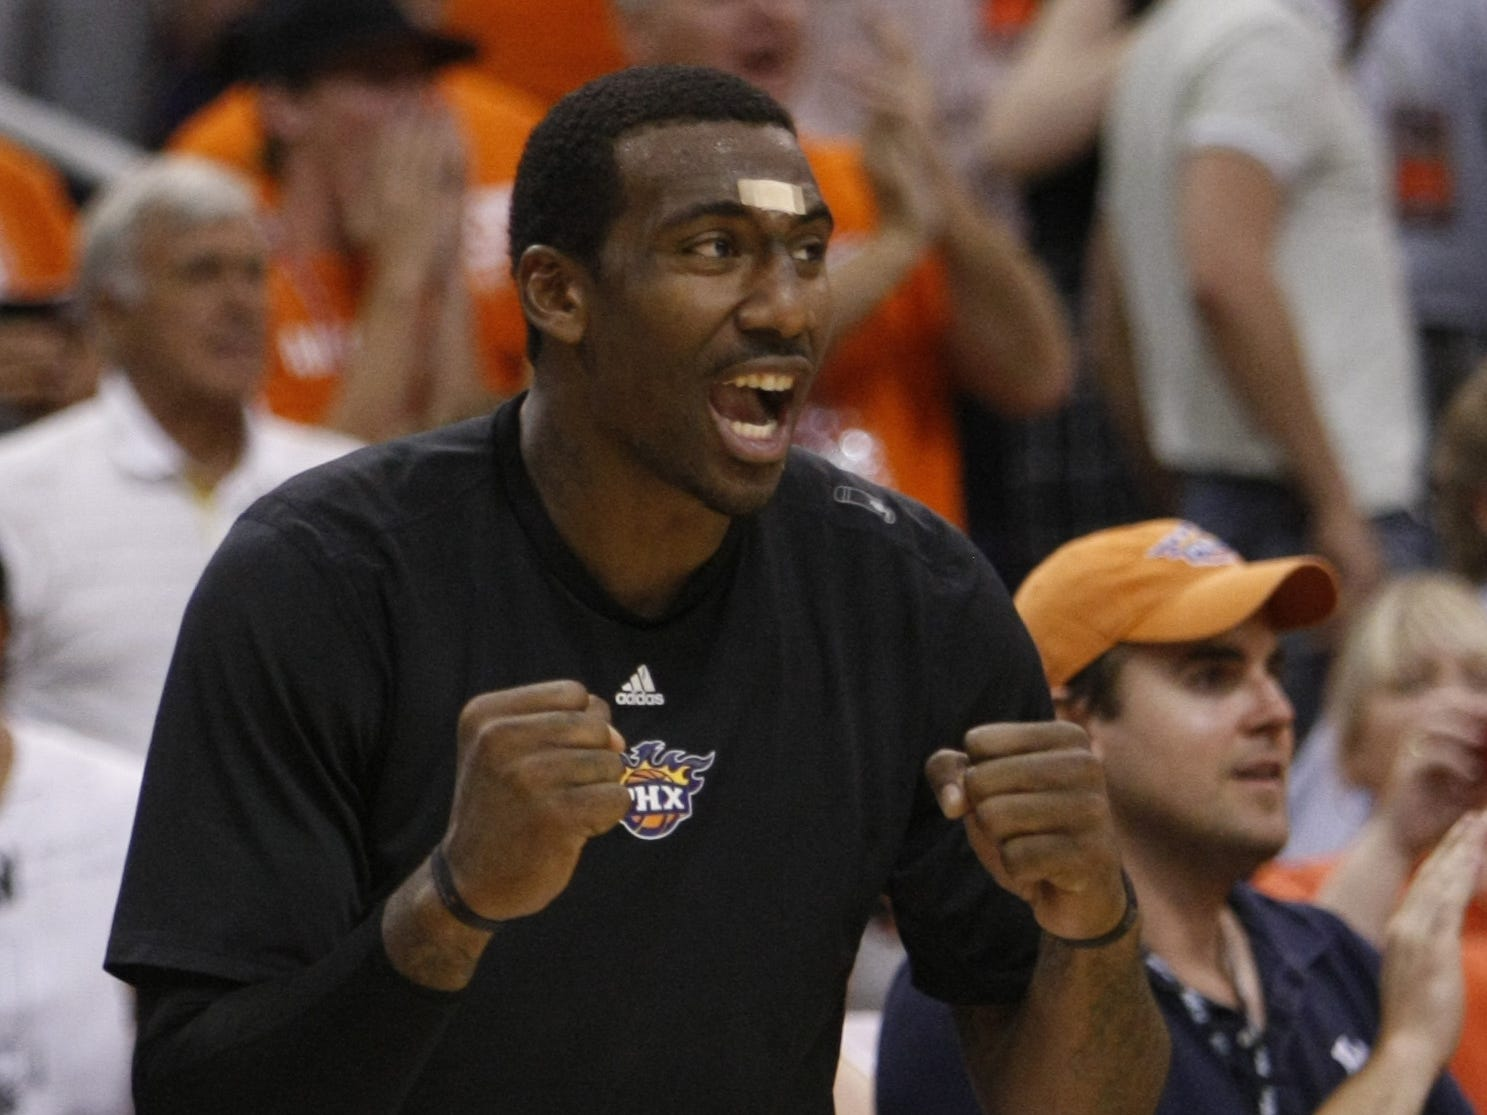 2009-10 | Suns MVP: Amar'e Stoudemire. STAT played in all 82 and averaged 23 and 9 in his last season in town. This was also the last time Phoenix made the playoffs.